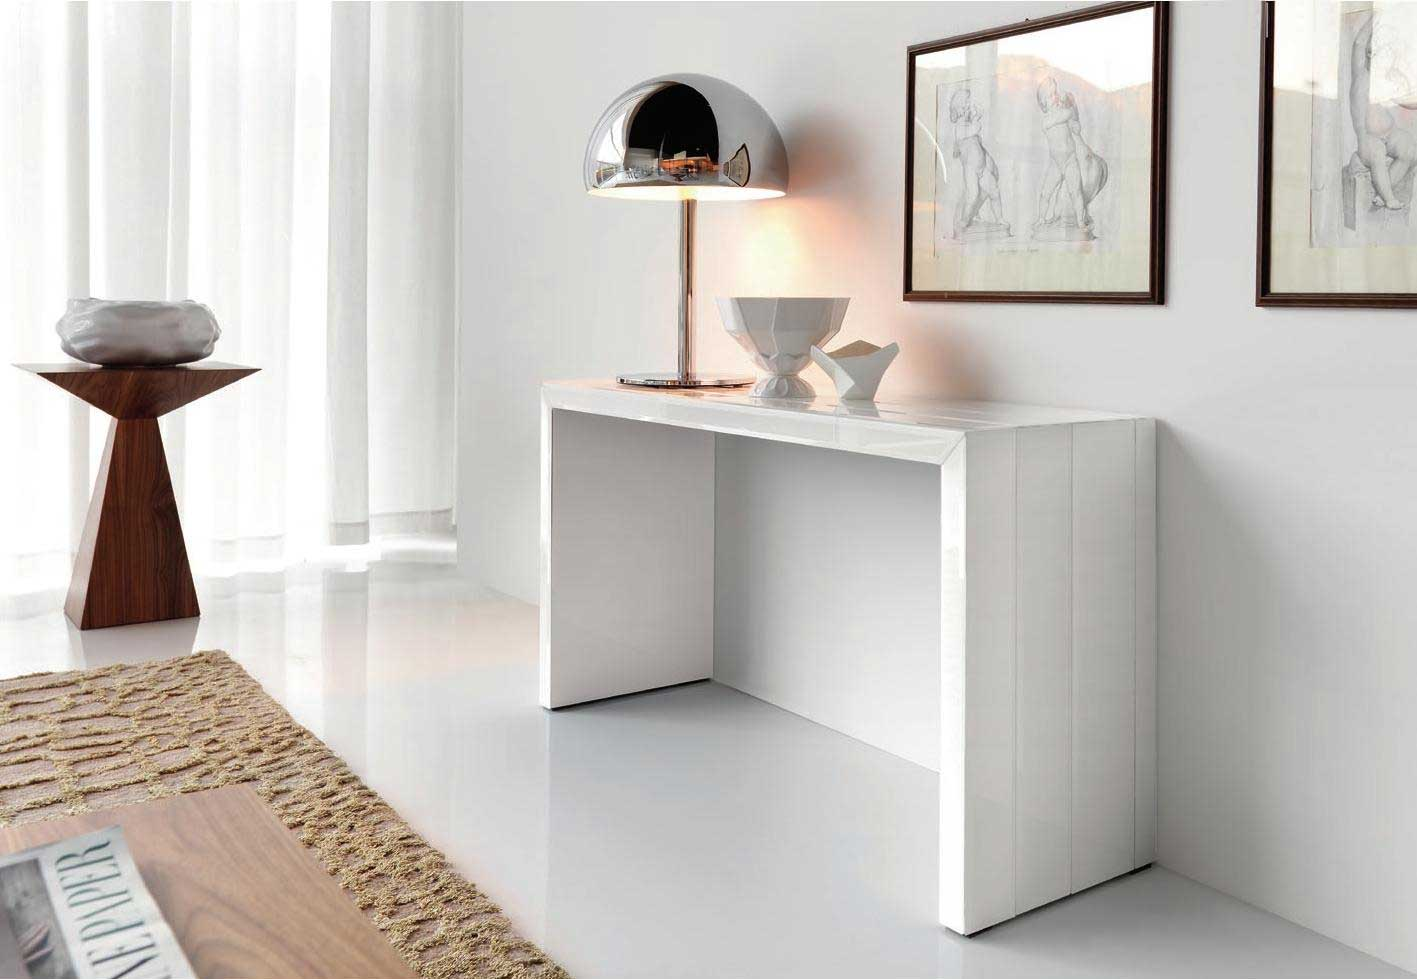 modern slim console table in white decorated with stylish table lamp andpictures on wall decoration. slim console tables that will add the sophistication of your